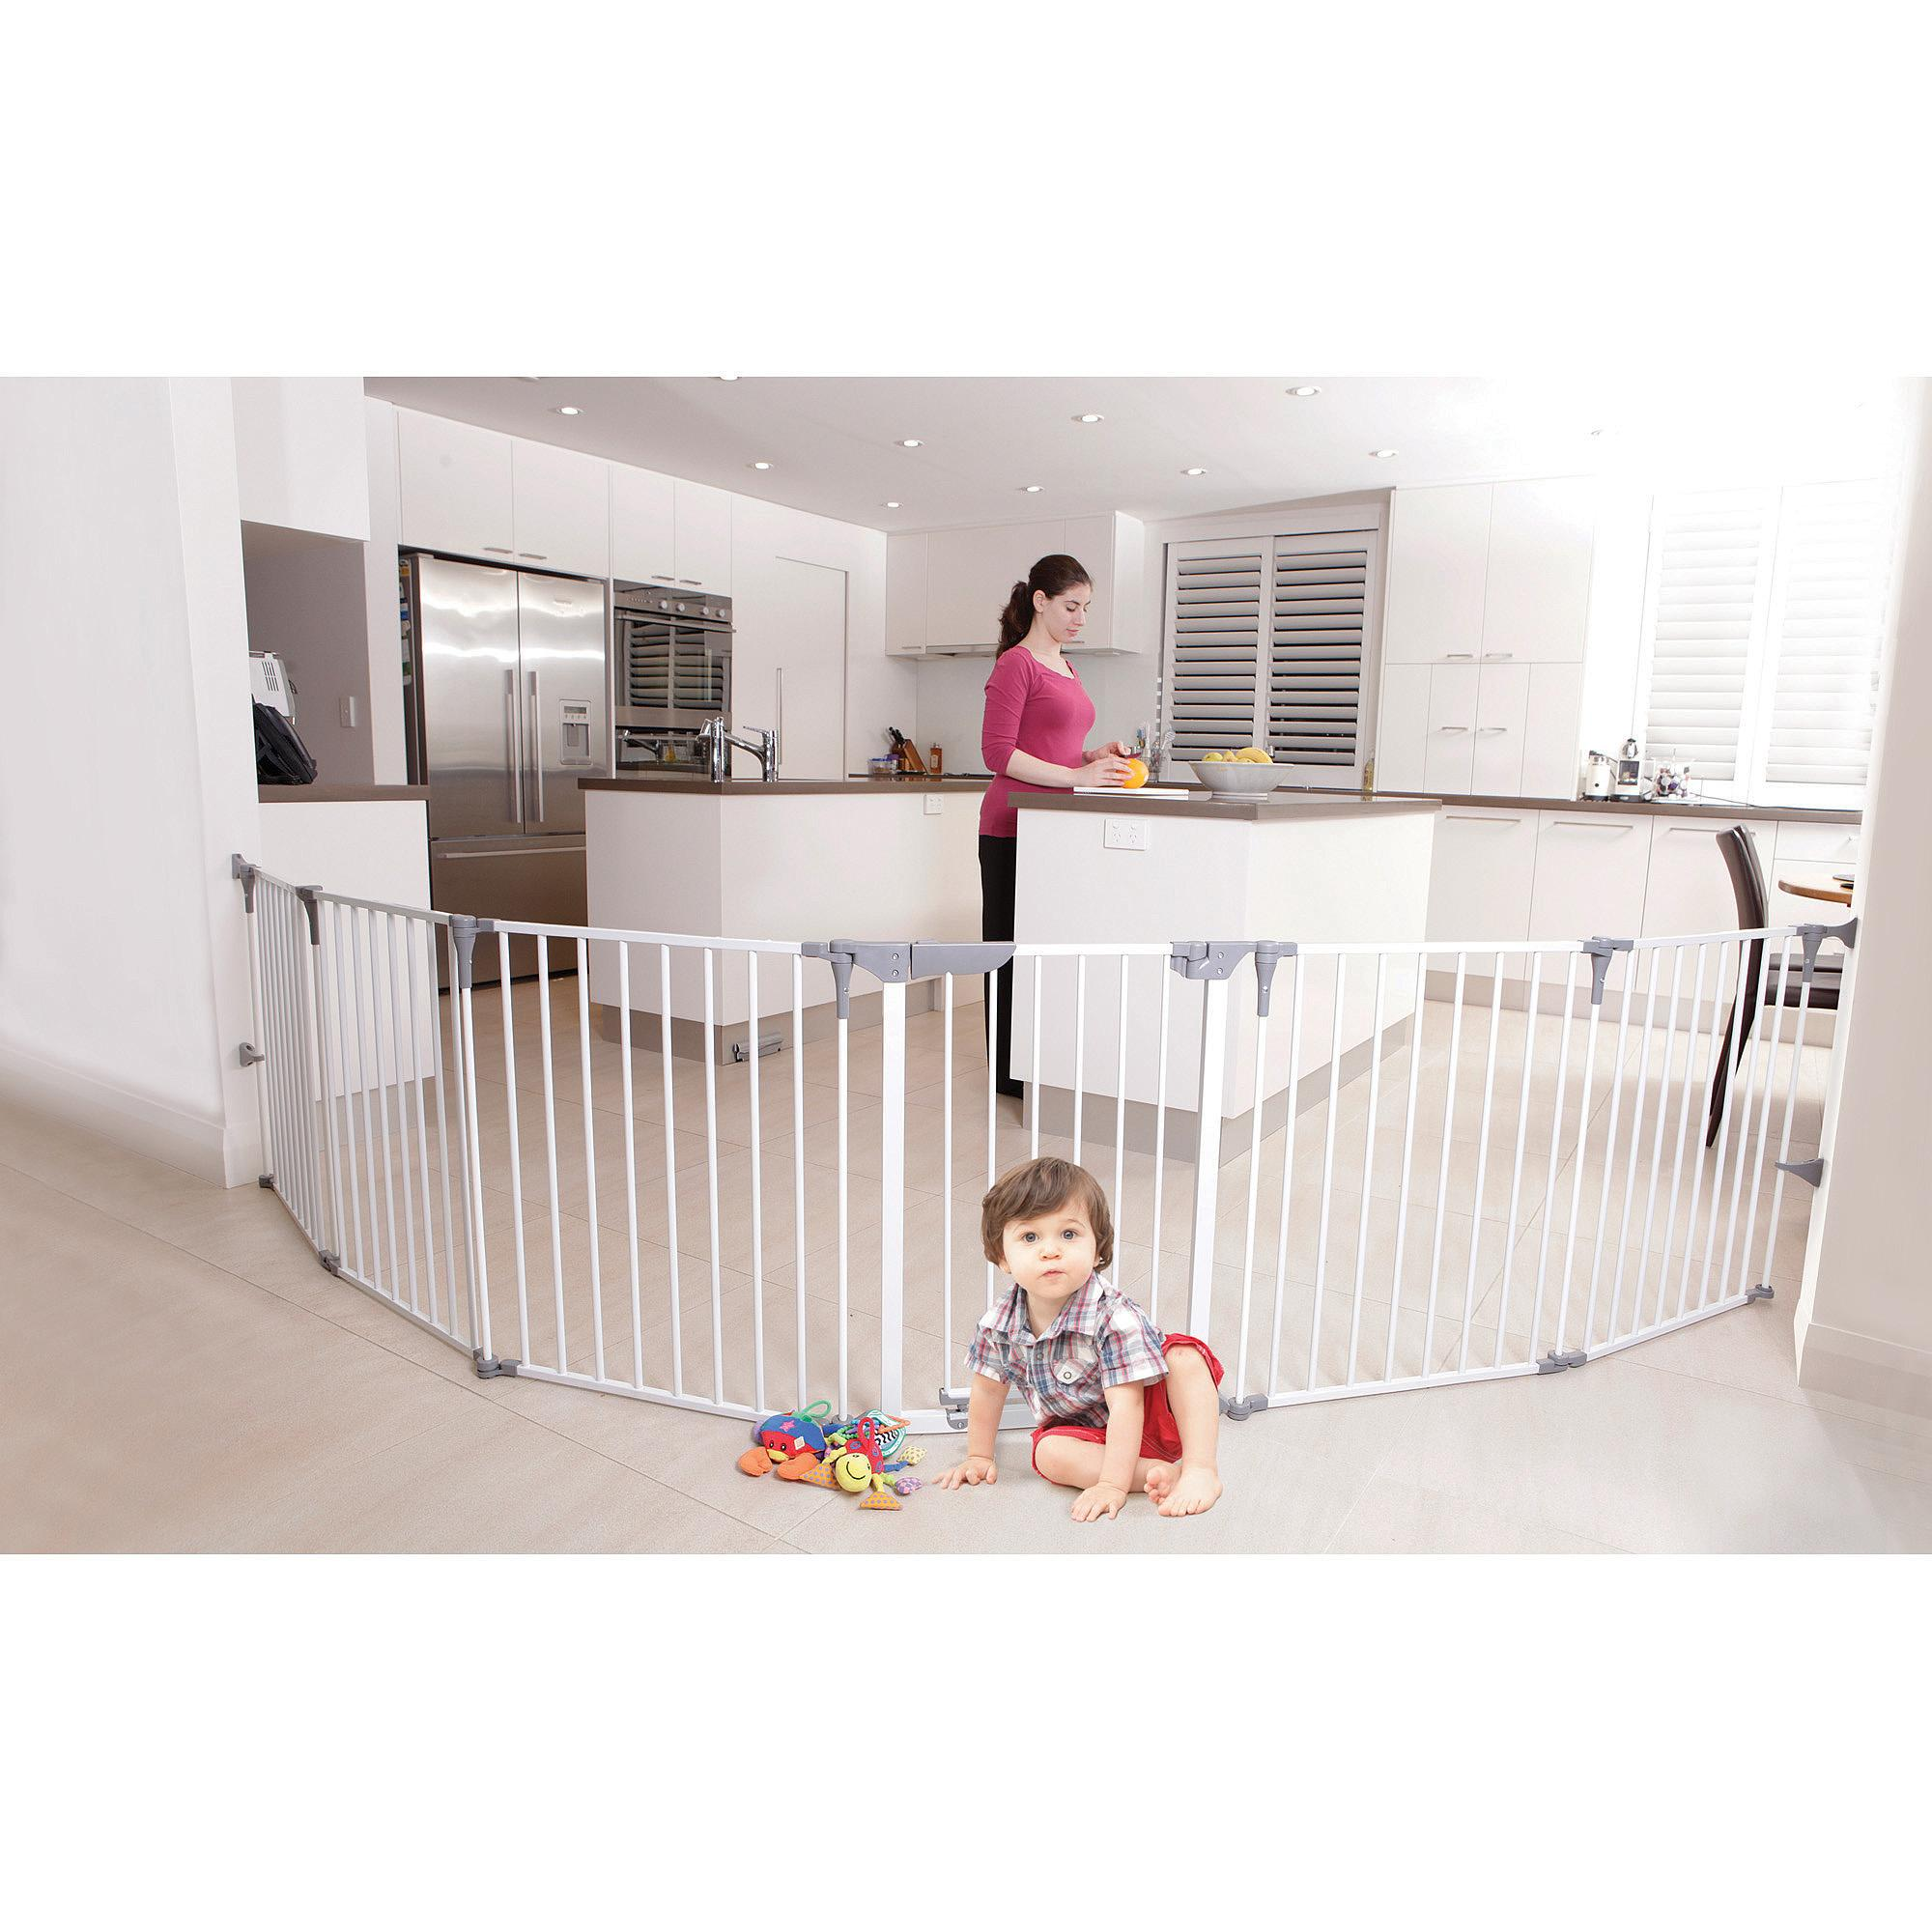 Dream Baby Royal Converta 3in1 Play Pen Product View